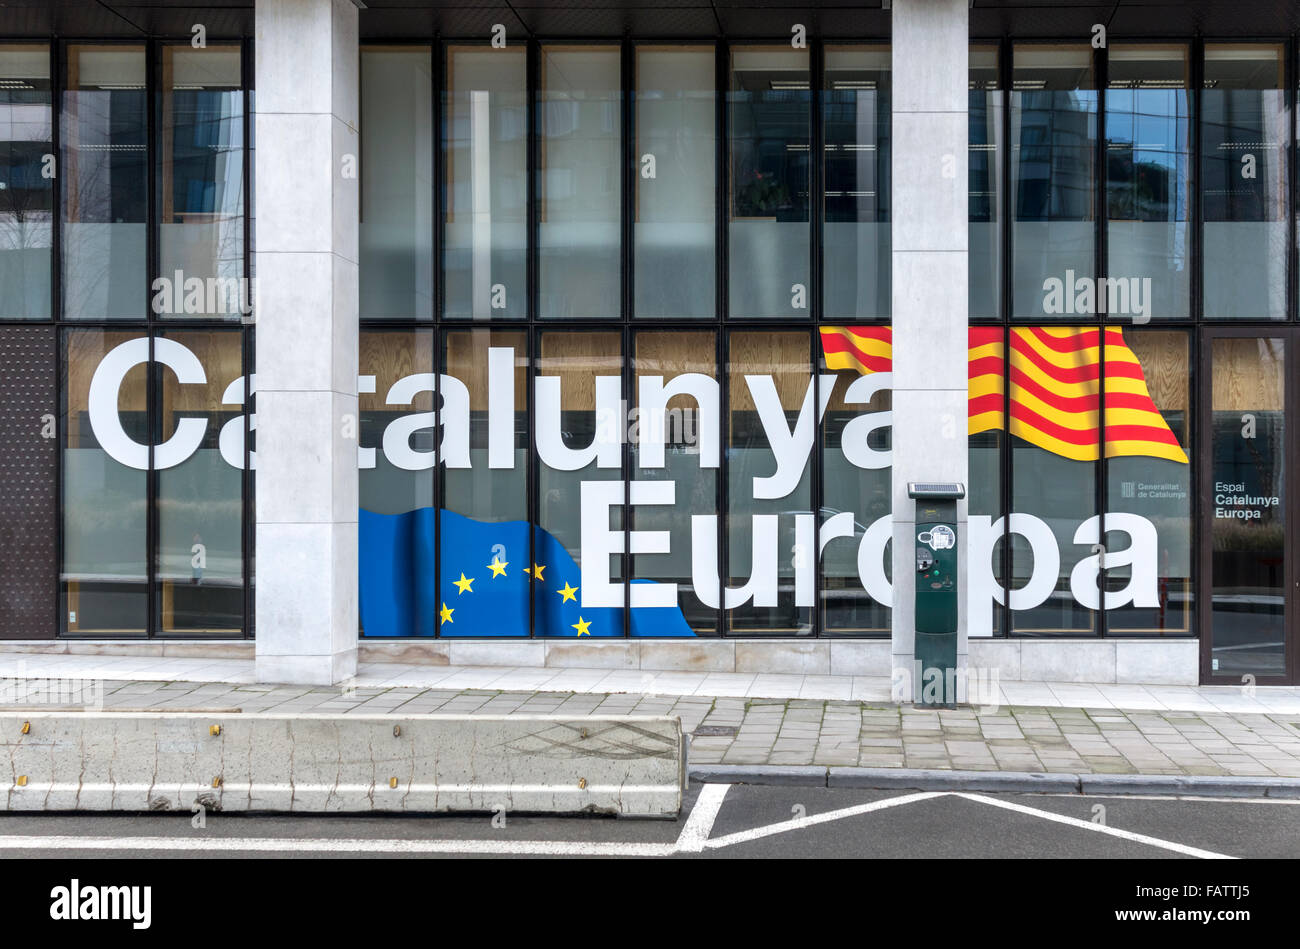 https://c7.alamy.com/comp/FATTJ5/brussels-the-office-of-the-delegation-of-the-government-of-catalonia-FATTJ5.jpg